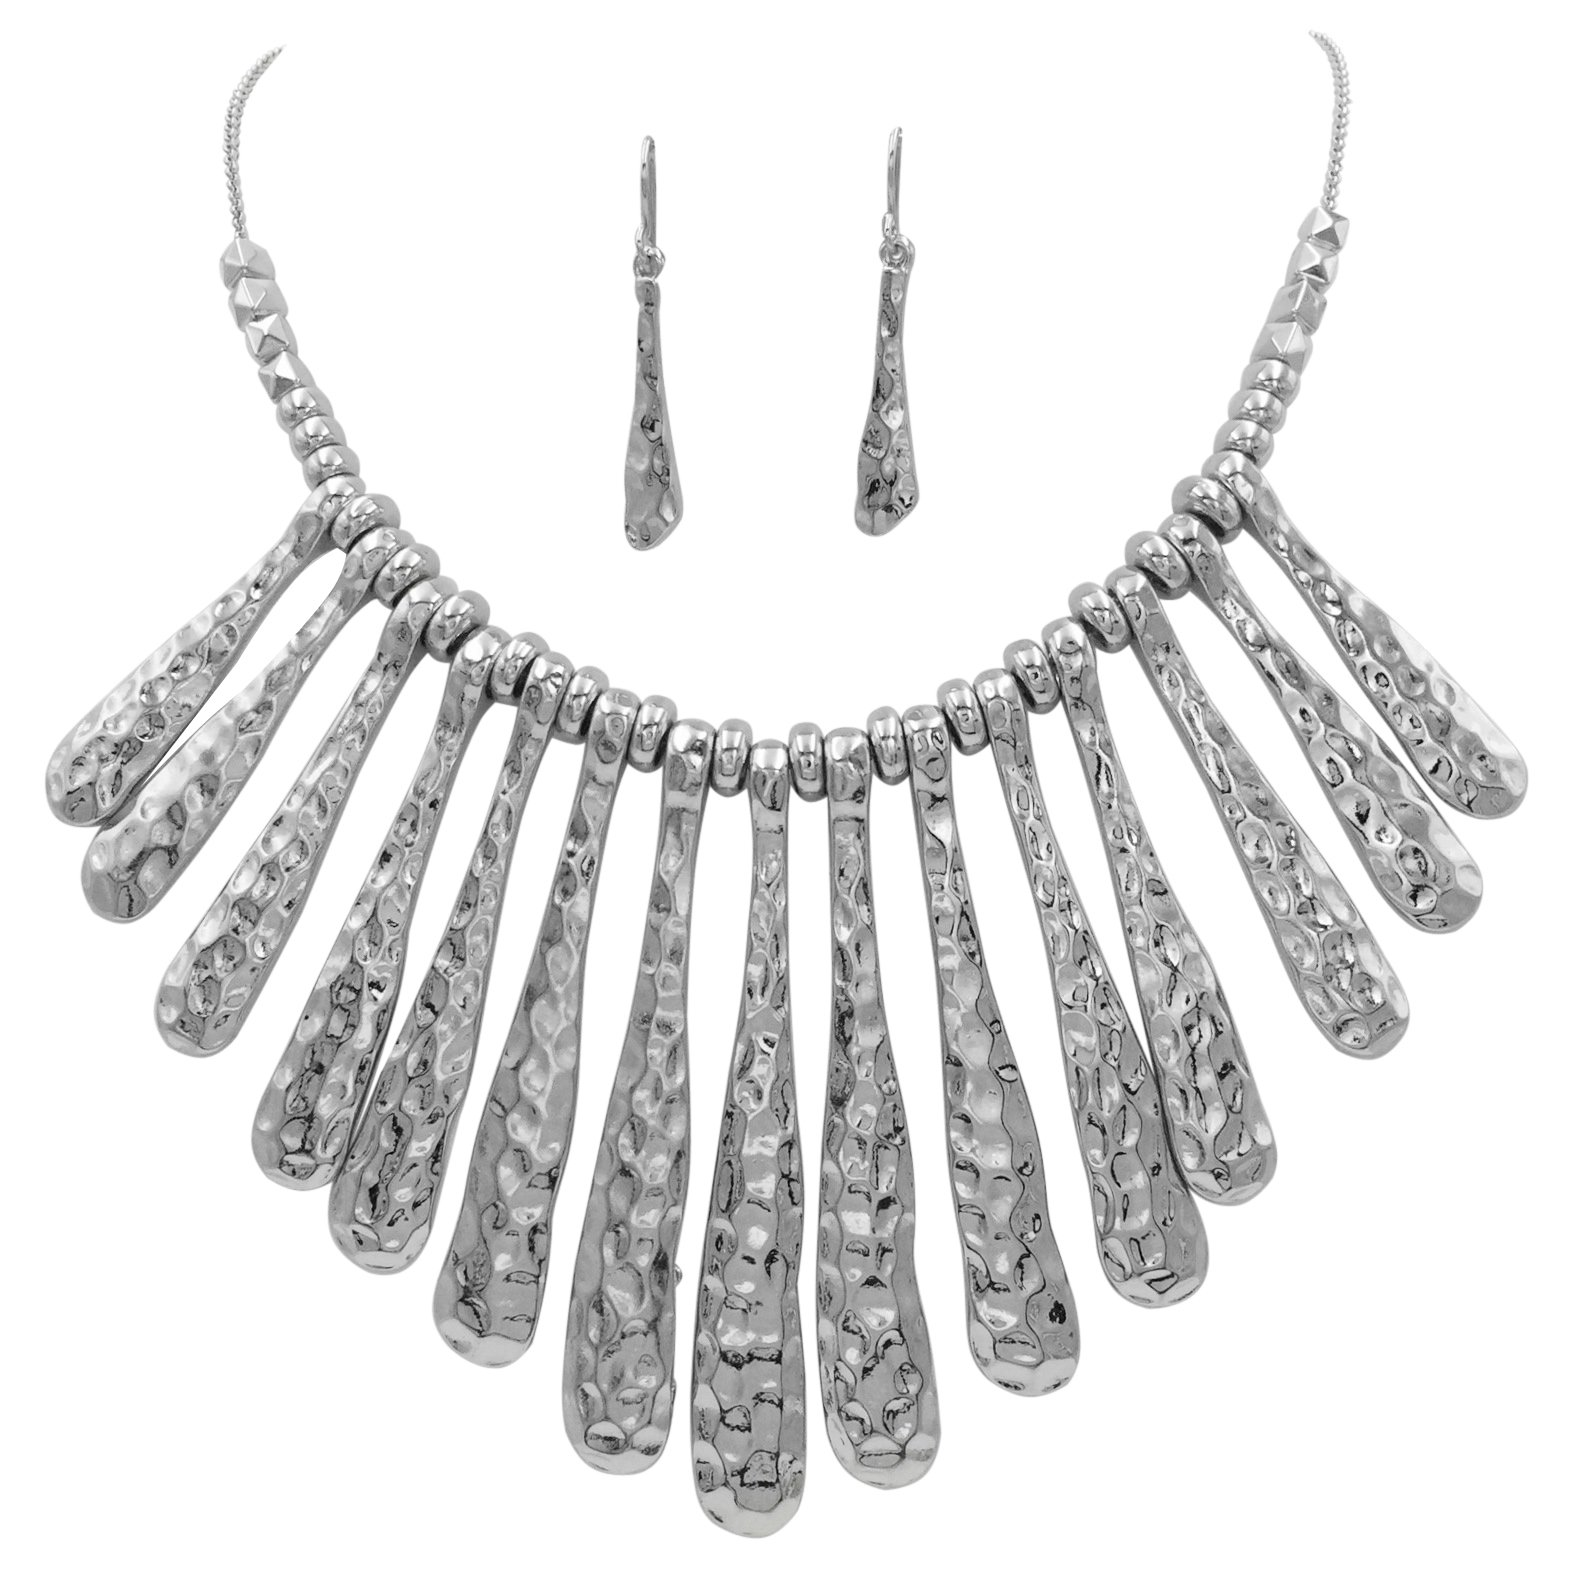 Gypsy Jewels Silver Tone Boutique Style Bib Statement Necklace & Earring Set (Hammered Stick Flair)